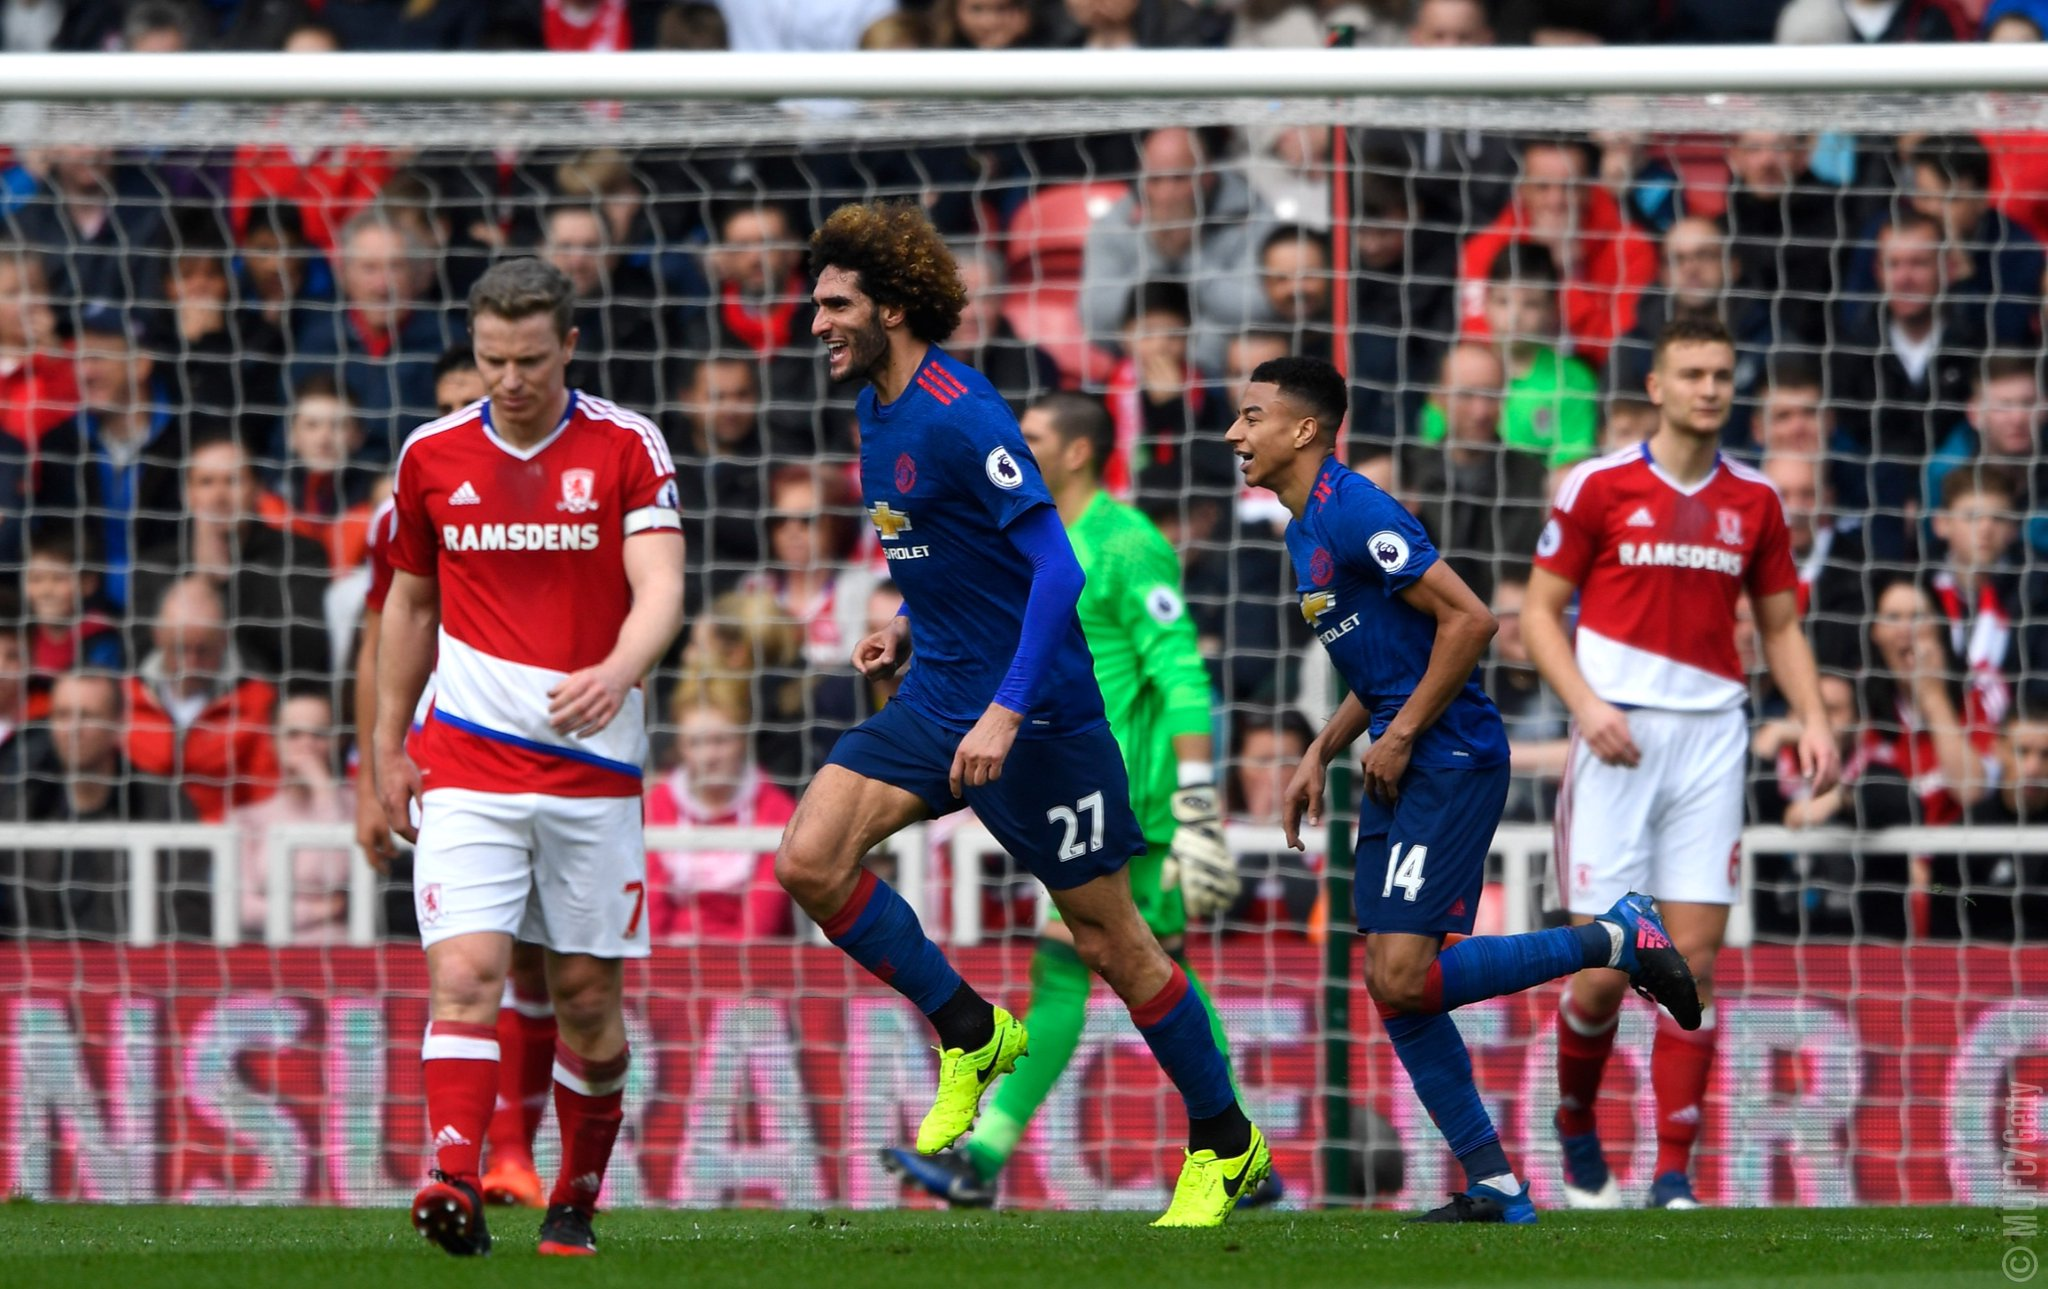 Man United Outsmart Stubborn Boro To Go Fifth